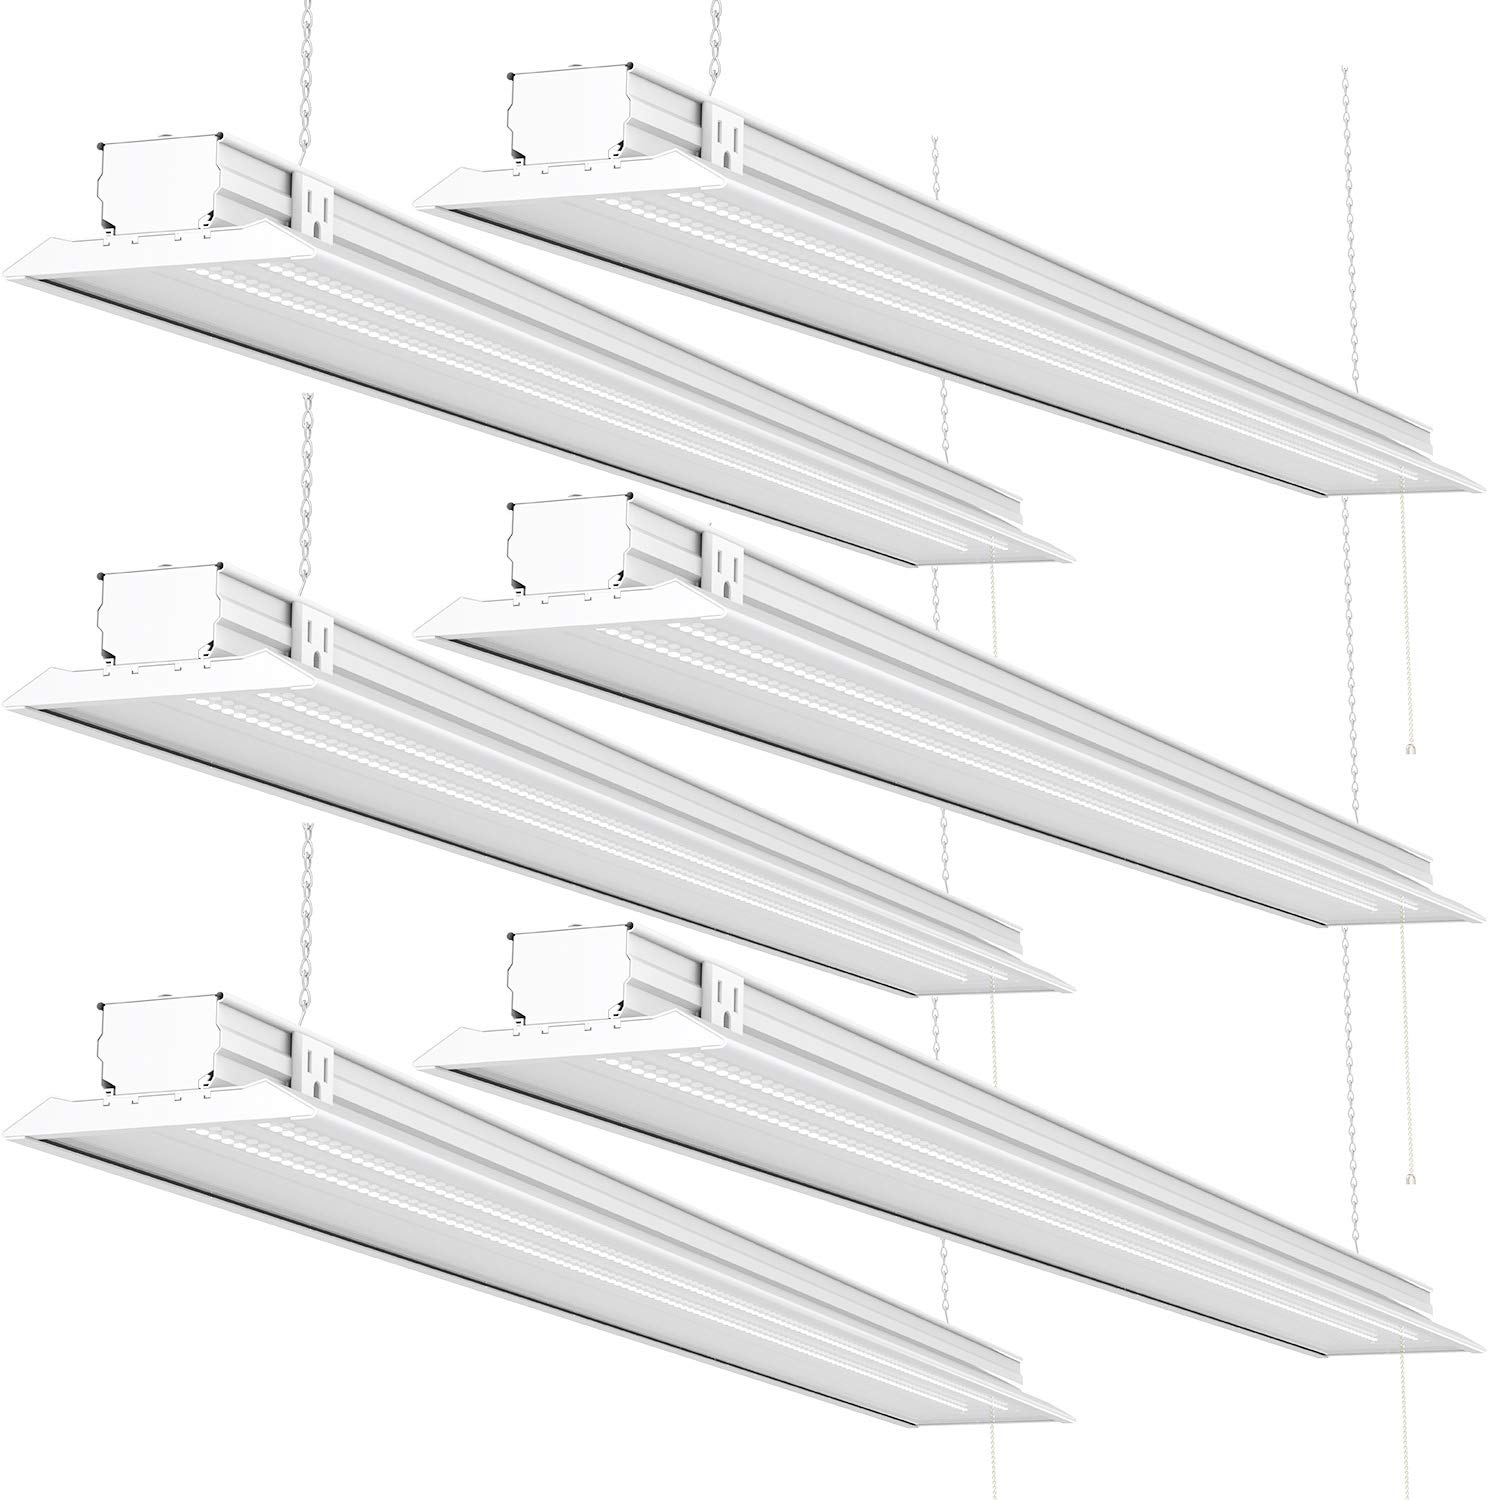 Sunco Lighting 6 Pack Flat LED Shop Light, 4 FT, Linkable Double Integrated LED, 40W=300W, 5000K Daylight, 4500 LM, Clear Lens, Plug in, Suspension Mount, Pull Chain, Garage - ETL + Energy Star by Sunco Lighting